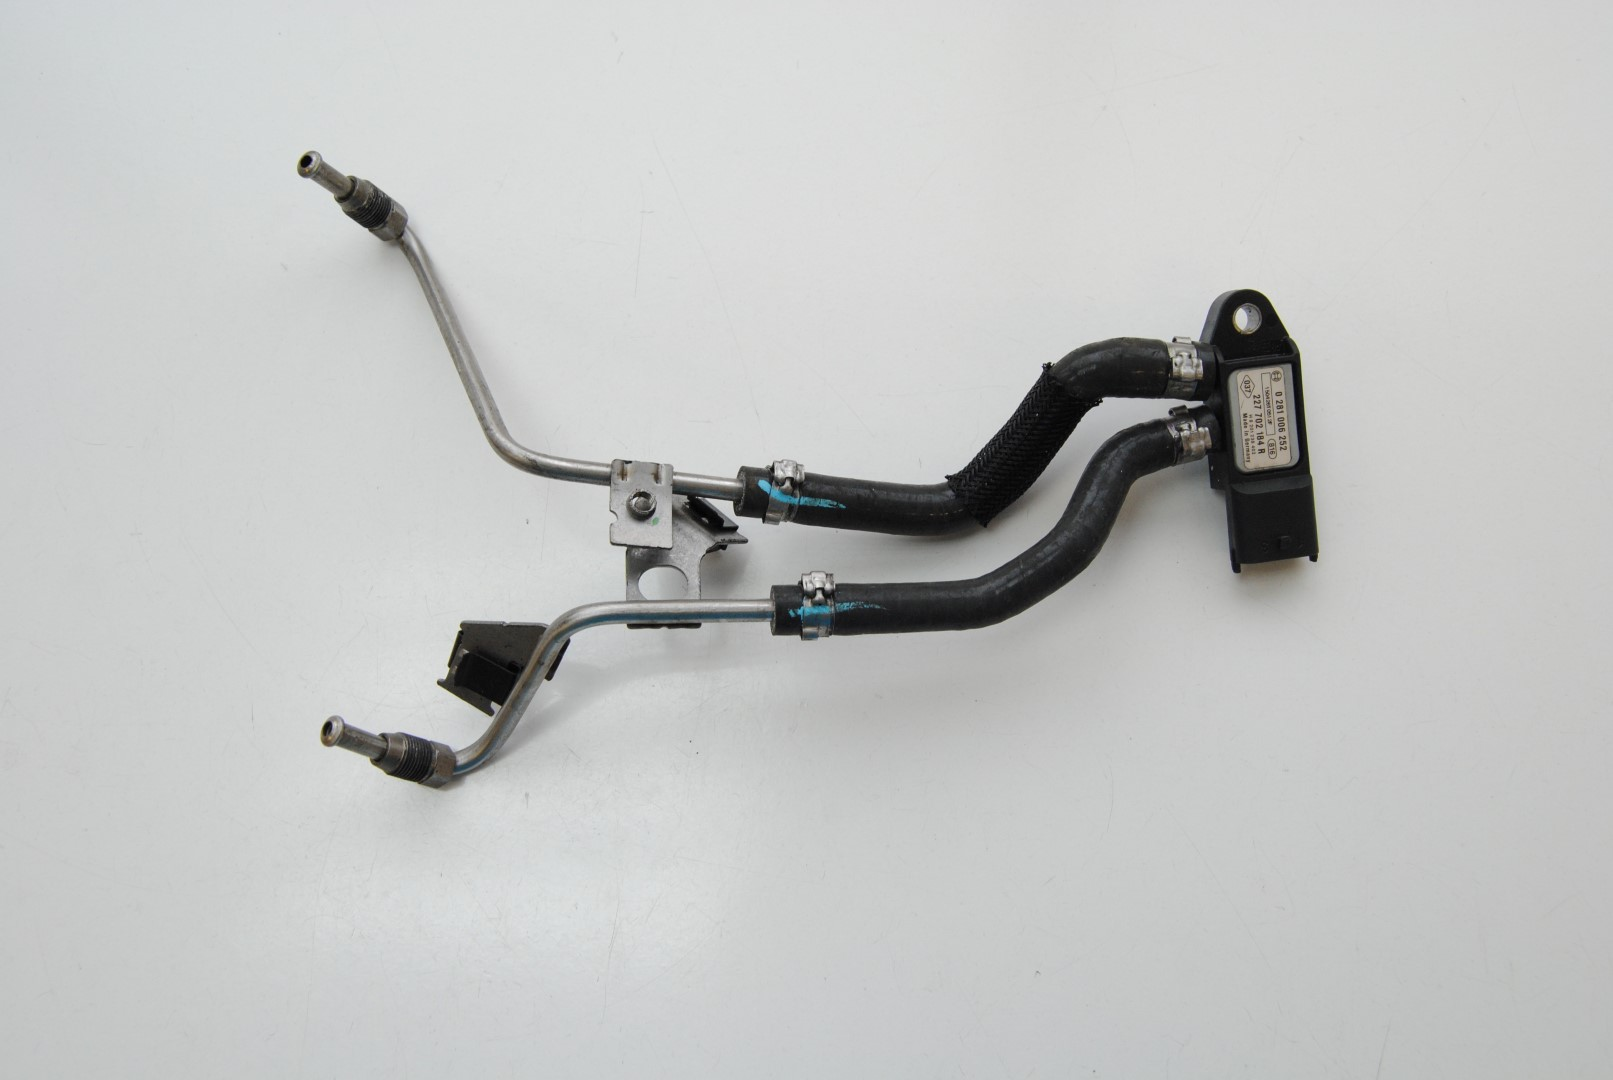 renault scenic 2 0 dci 2015 rhd dpf exhaust map pressure sensor 227702184r ebay. Black Bedroom Furniture Sets. Home Design Ideas